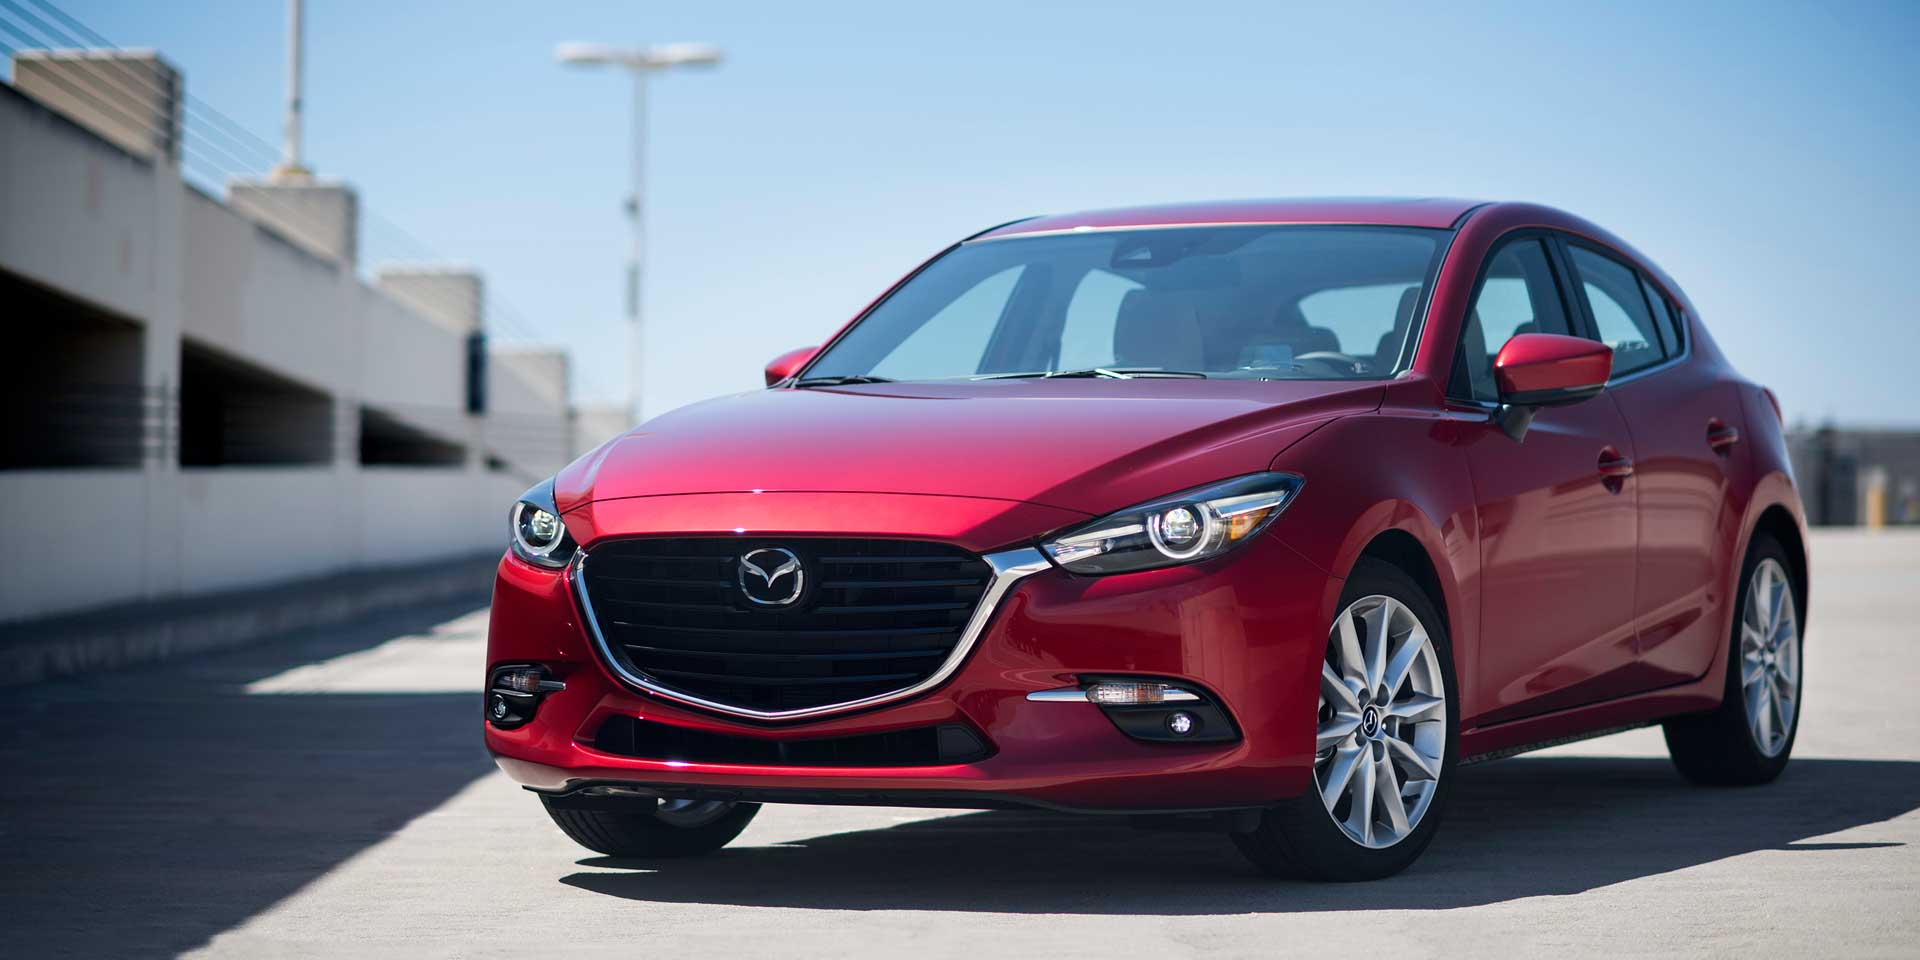 Used Cars For Sale New Cars For Sale Car Dealers Cars Chicago - Mazda dealer chicago